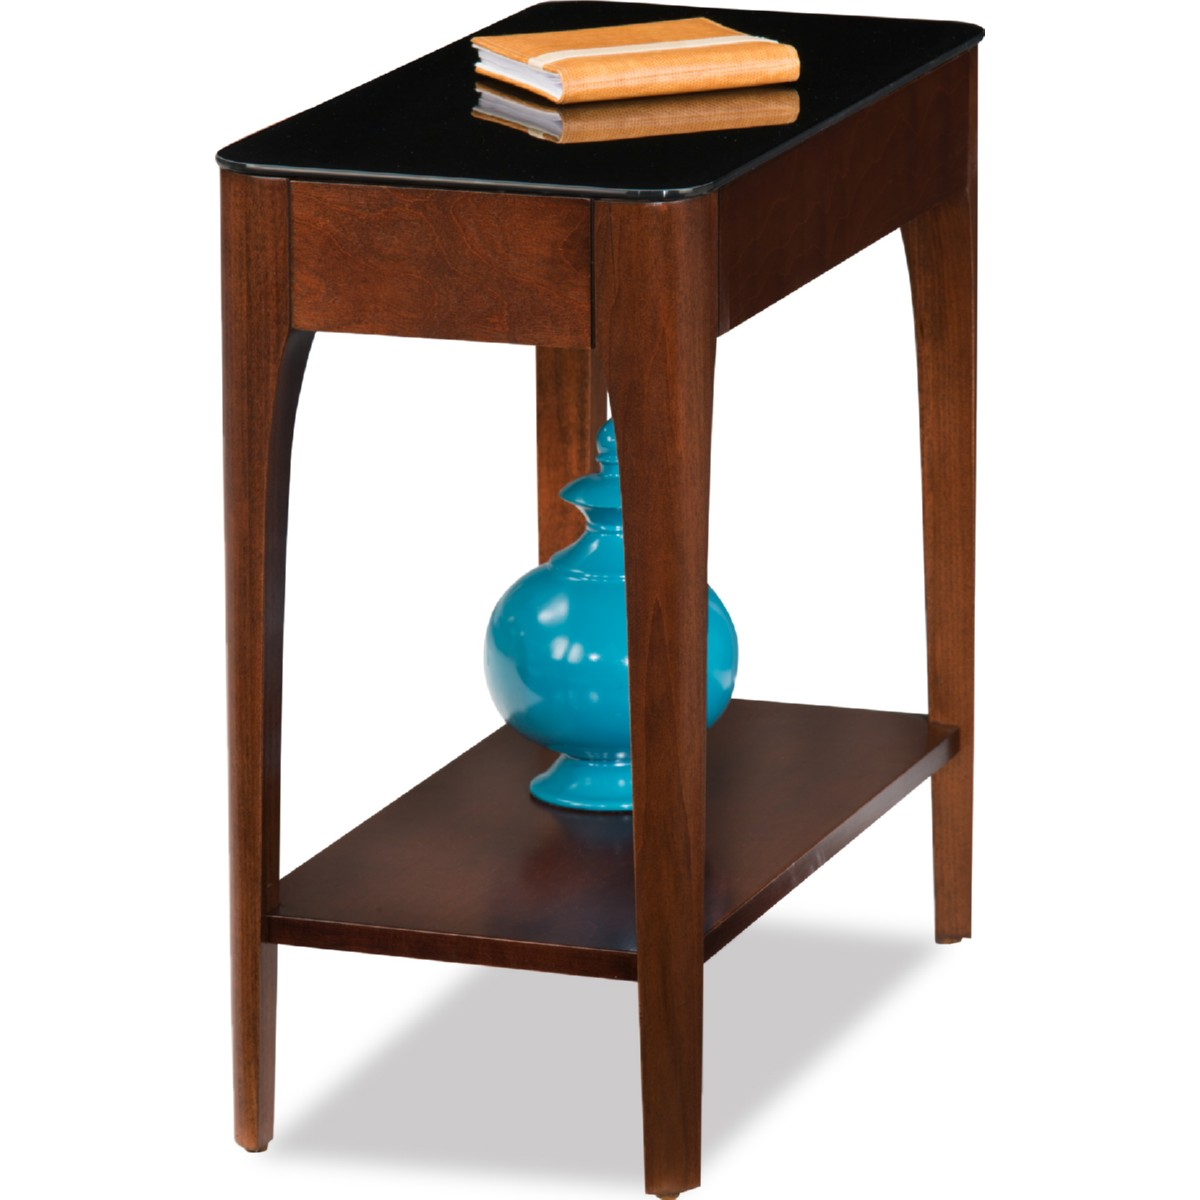 Black Glass Coffee Table Amazon: Leick 11105 Obsidian Narrow Chairside Table In Chestnut